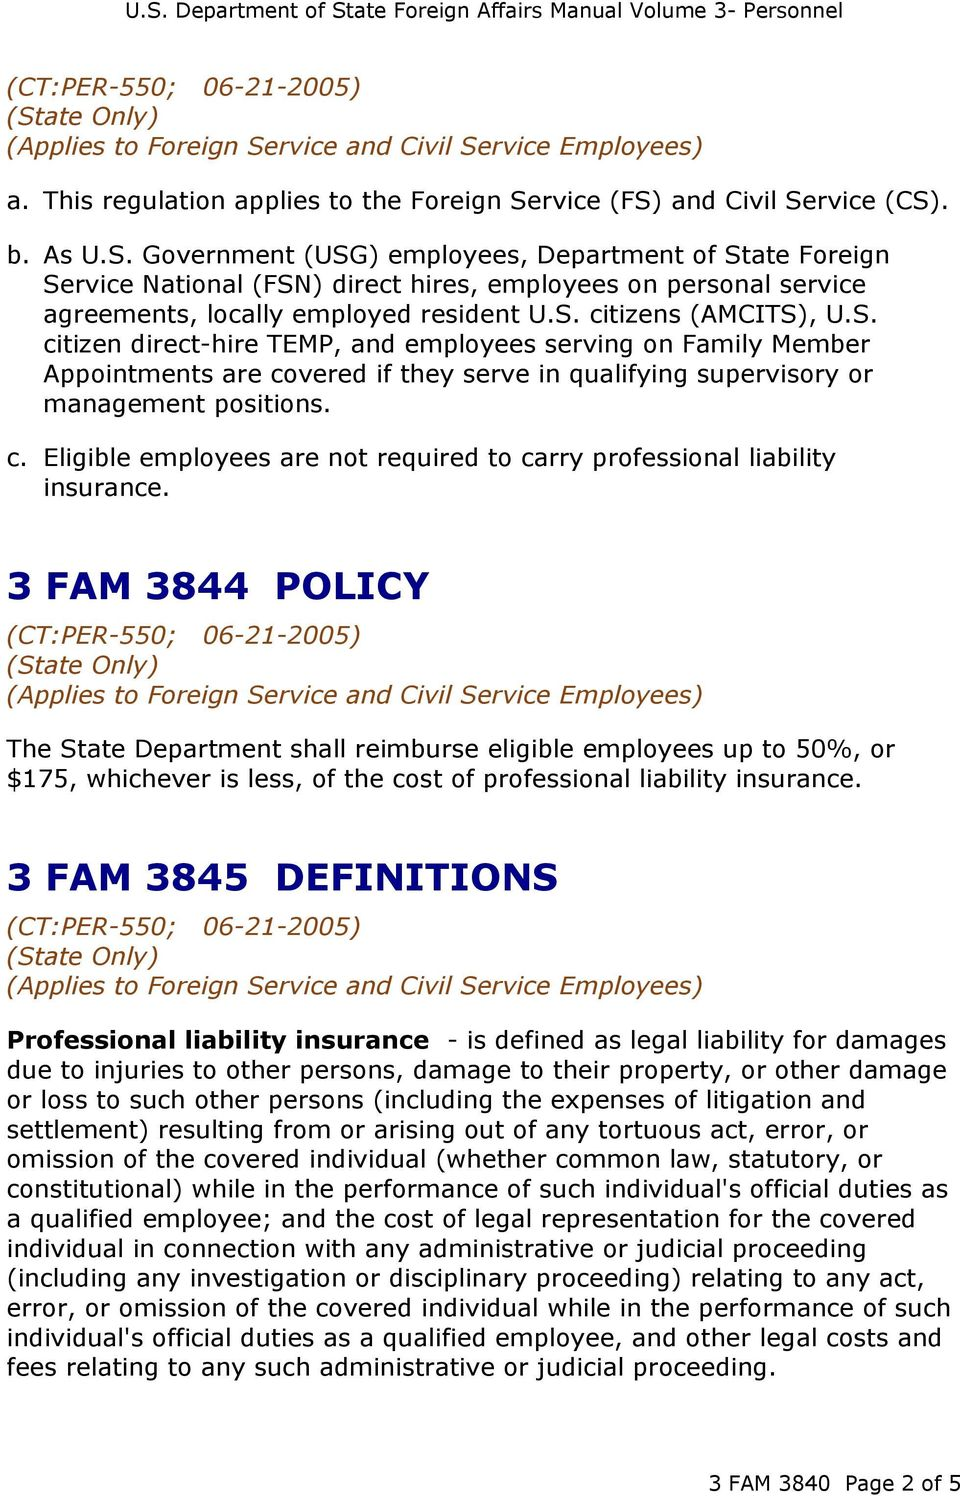 S. citizens (AMCITS), U.S. citizen direct-hire TEMP, and employees serving on Family Member Appointments are covered if they serve in qualifying supervisory or management positions. c. Eligible employees are not required to carry professional liability insurance.